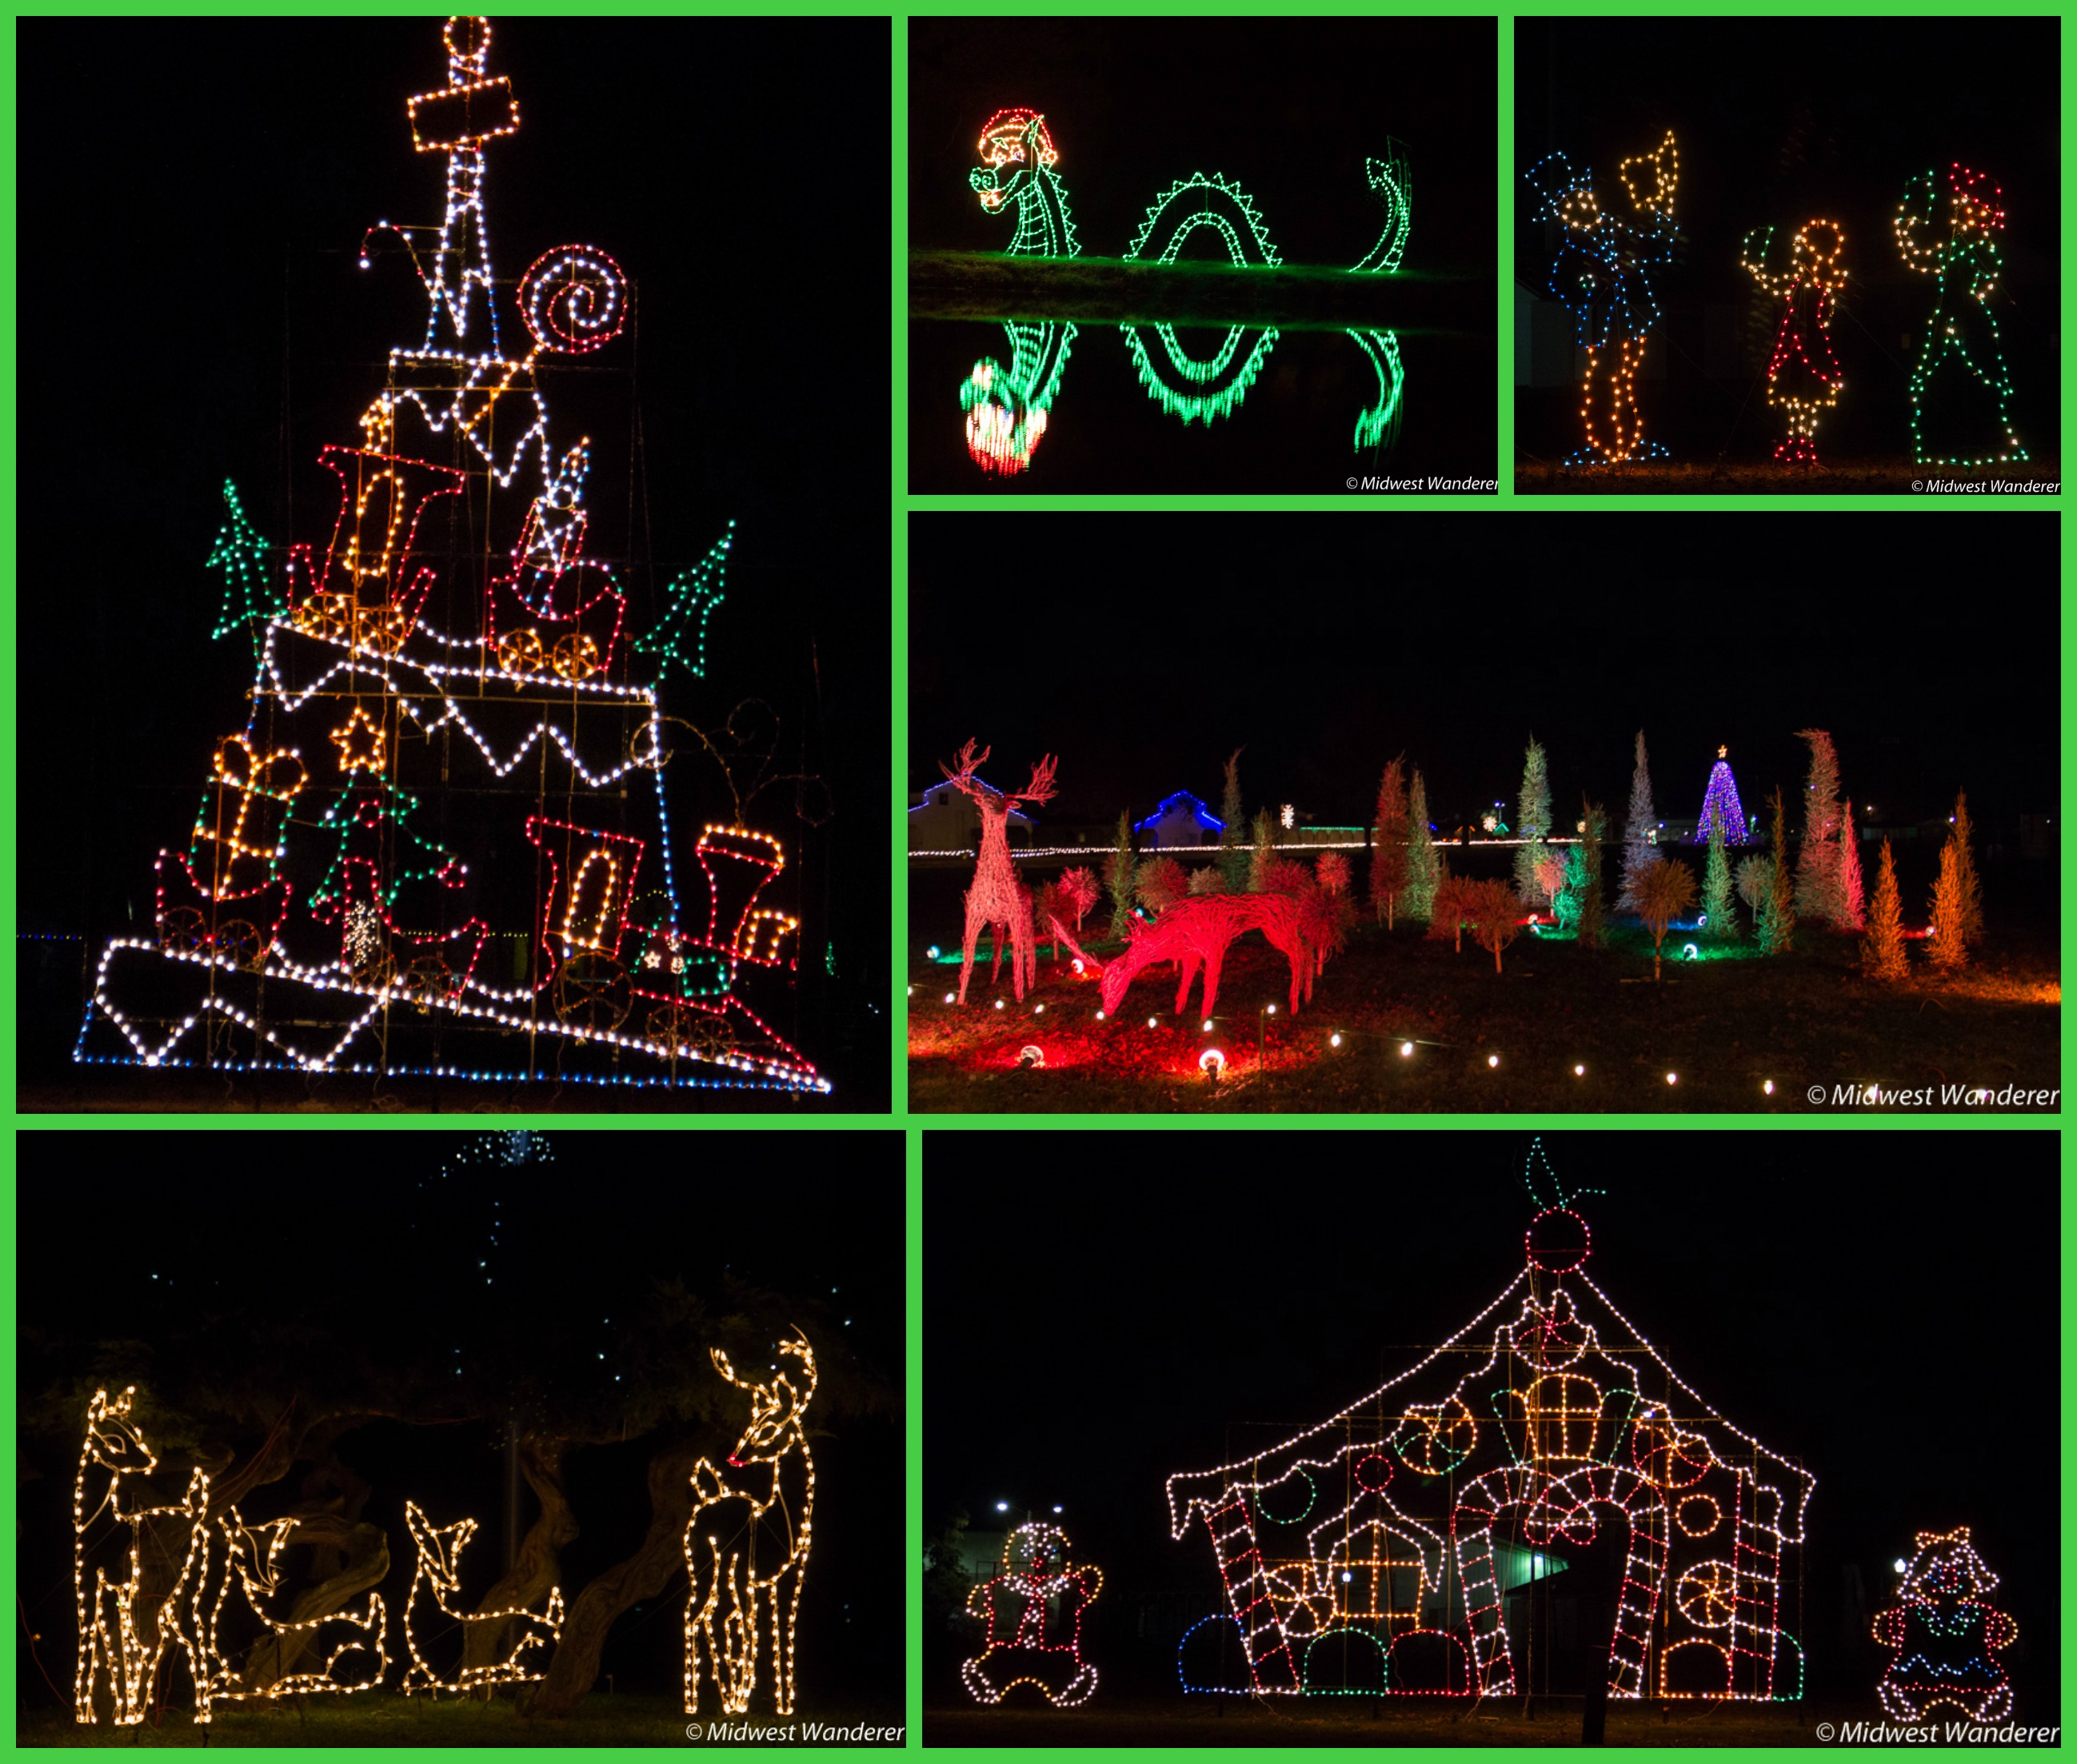 Du Quoin Holiday Lights Fair - 2